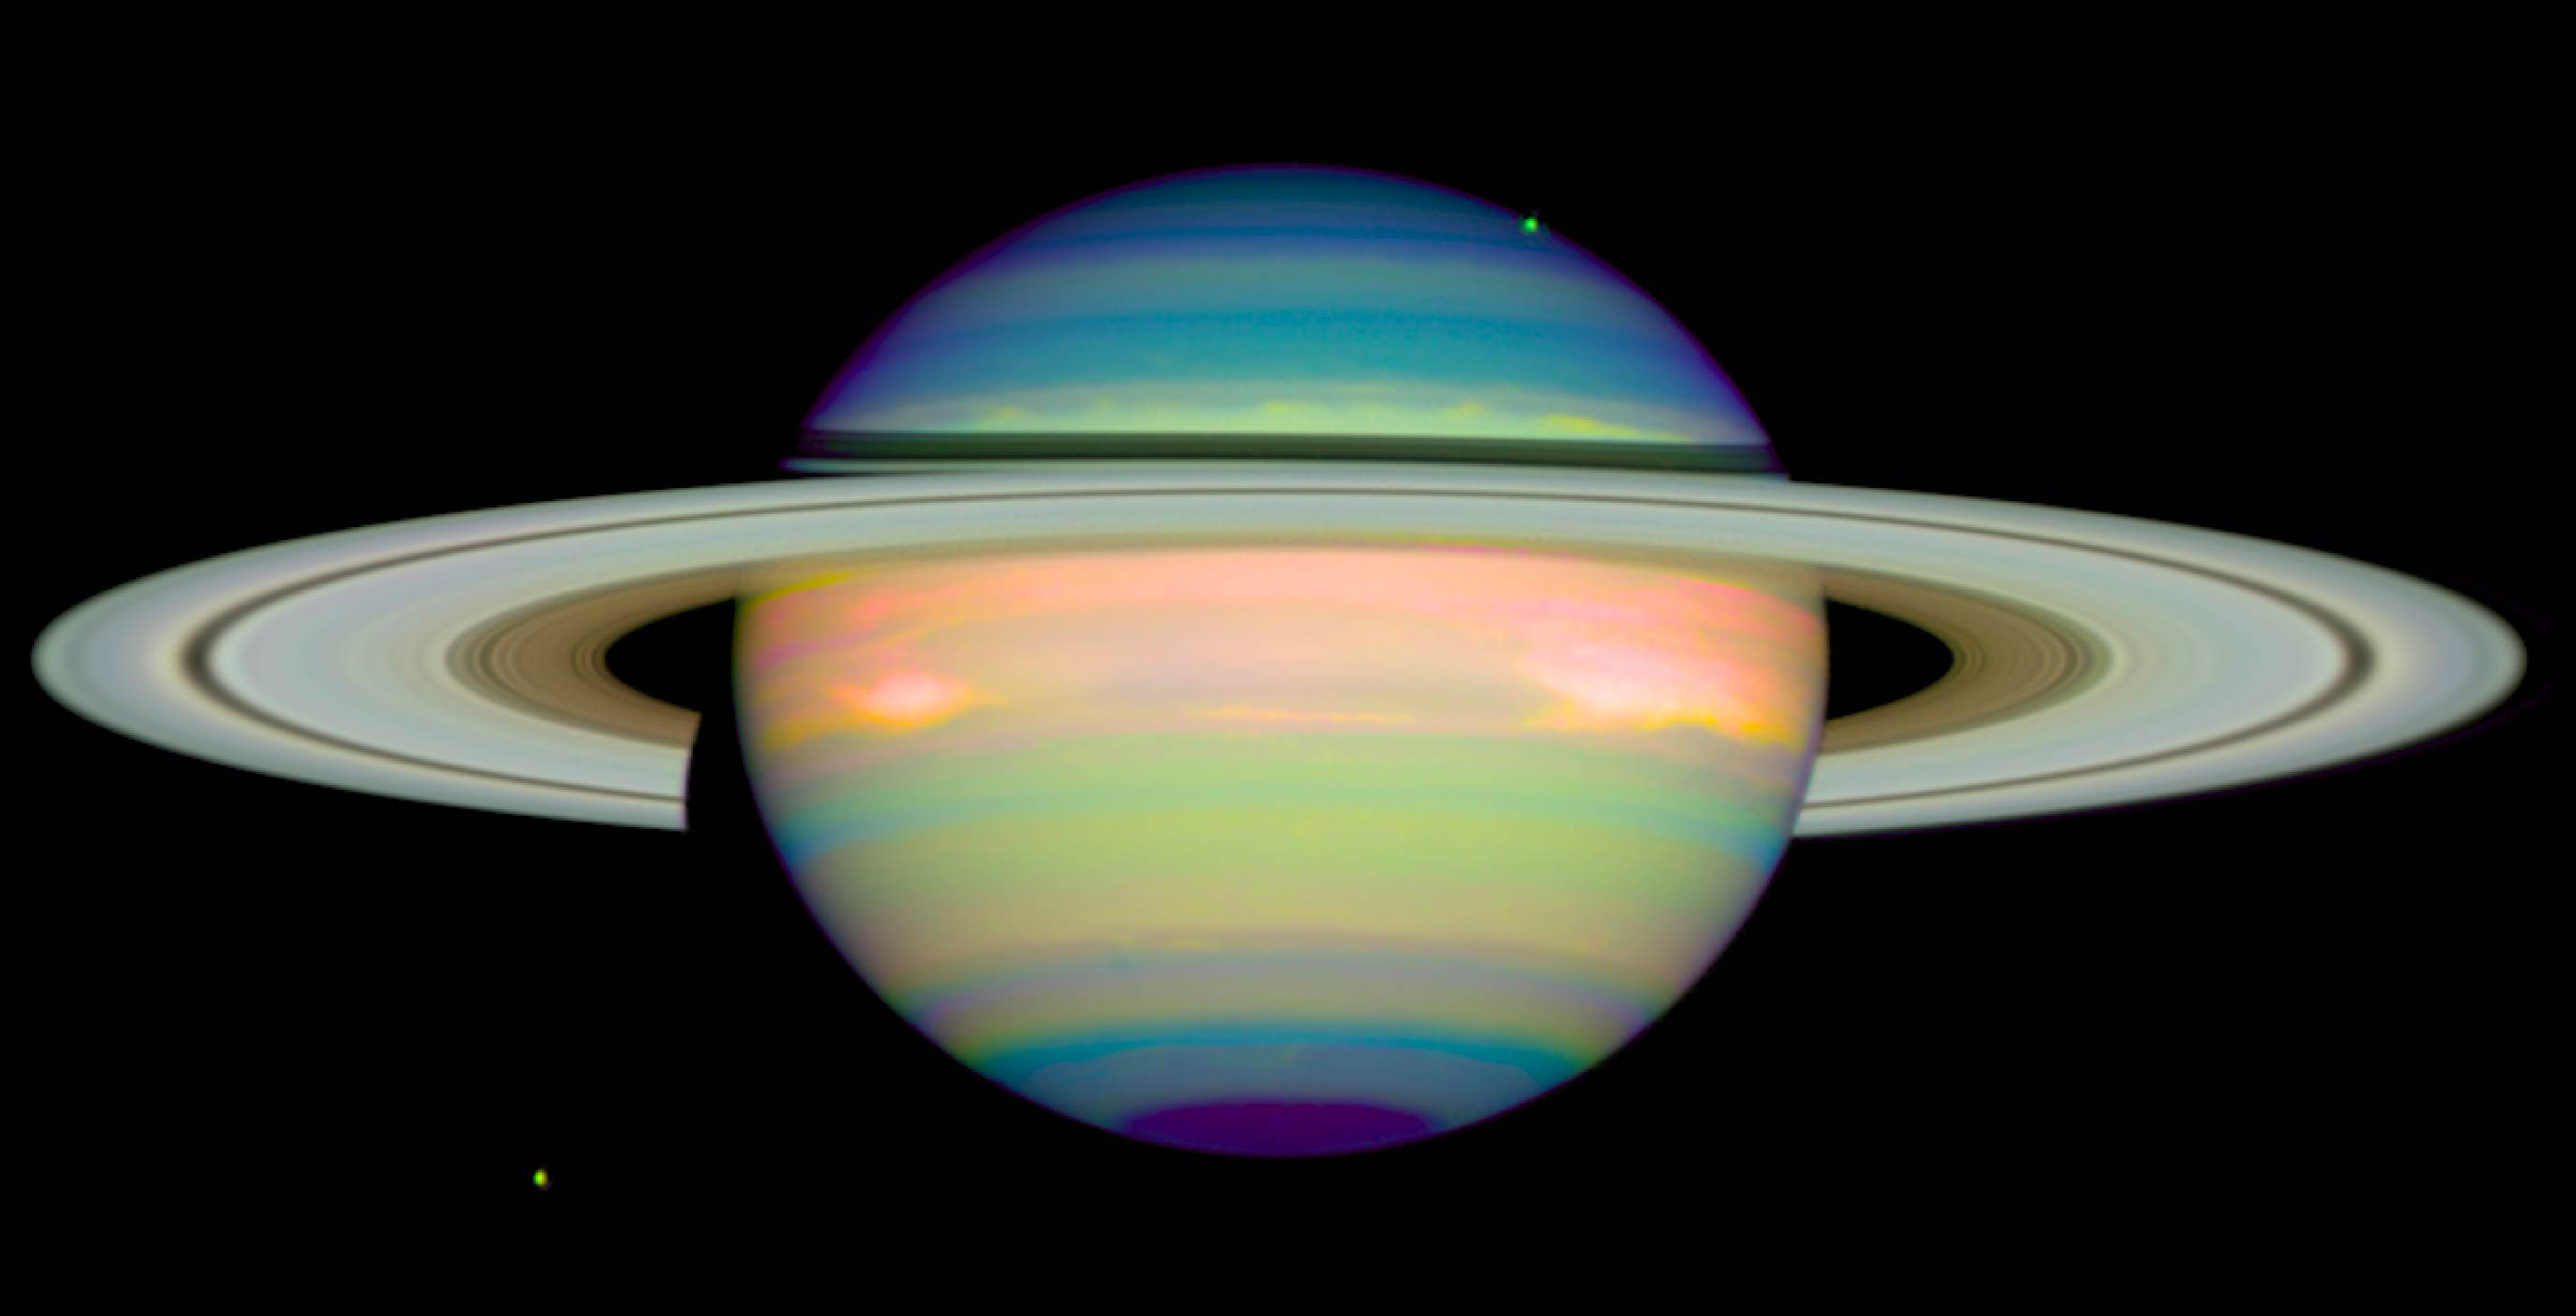 hubble images of saturn -#main